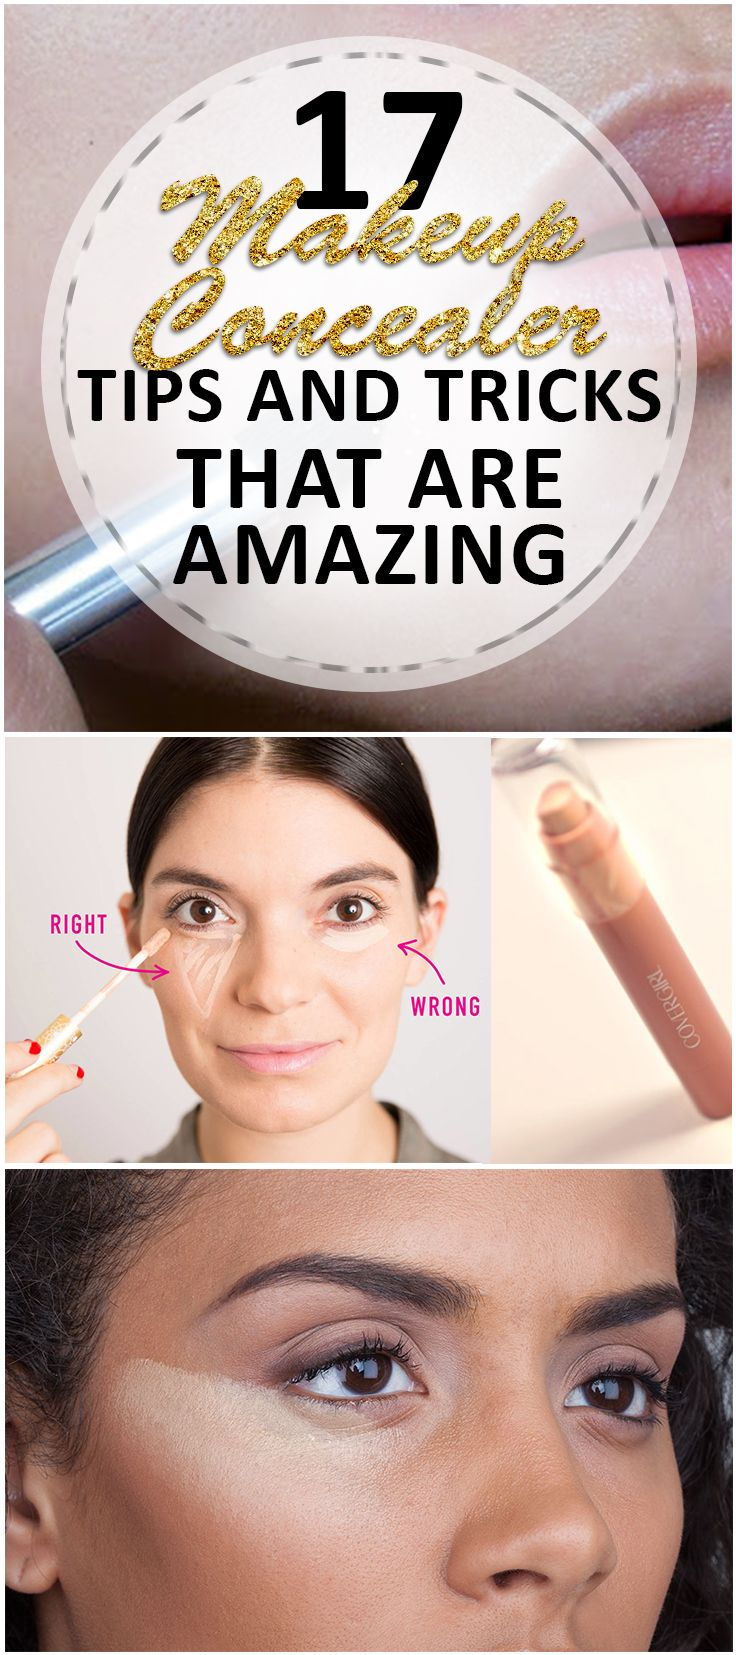 Main Makeup Brushes You Need: One Of The Main Jobs Of Makeup Is Covering Up Blemishes